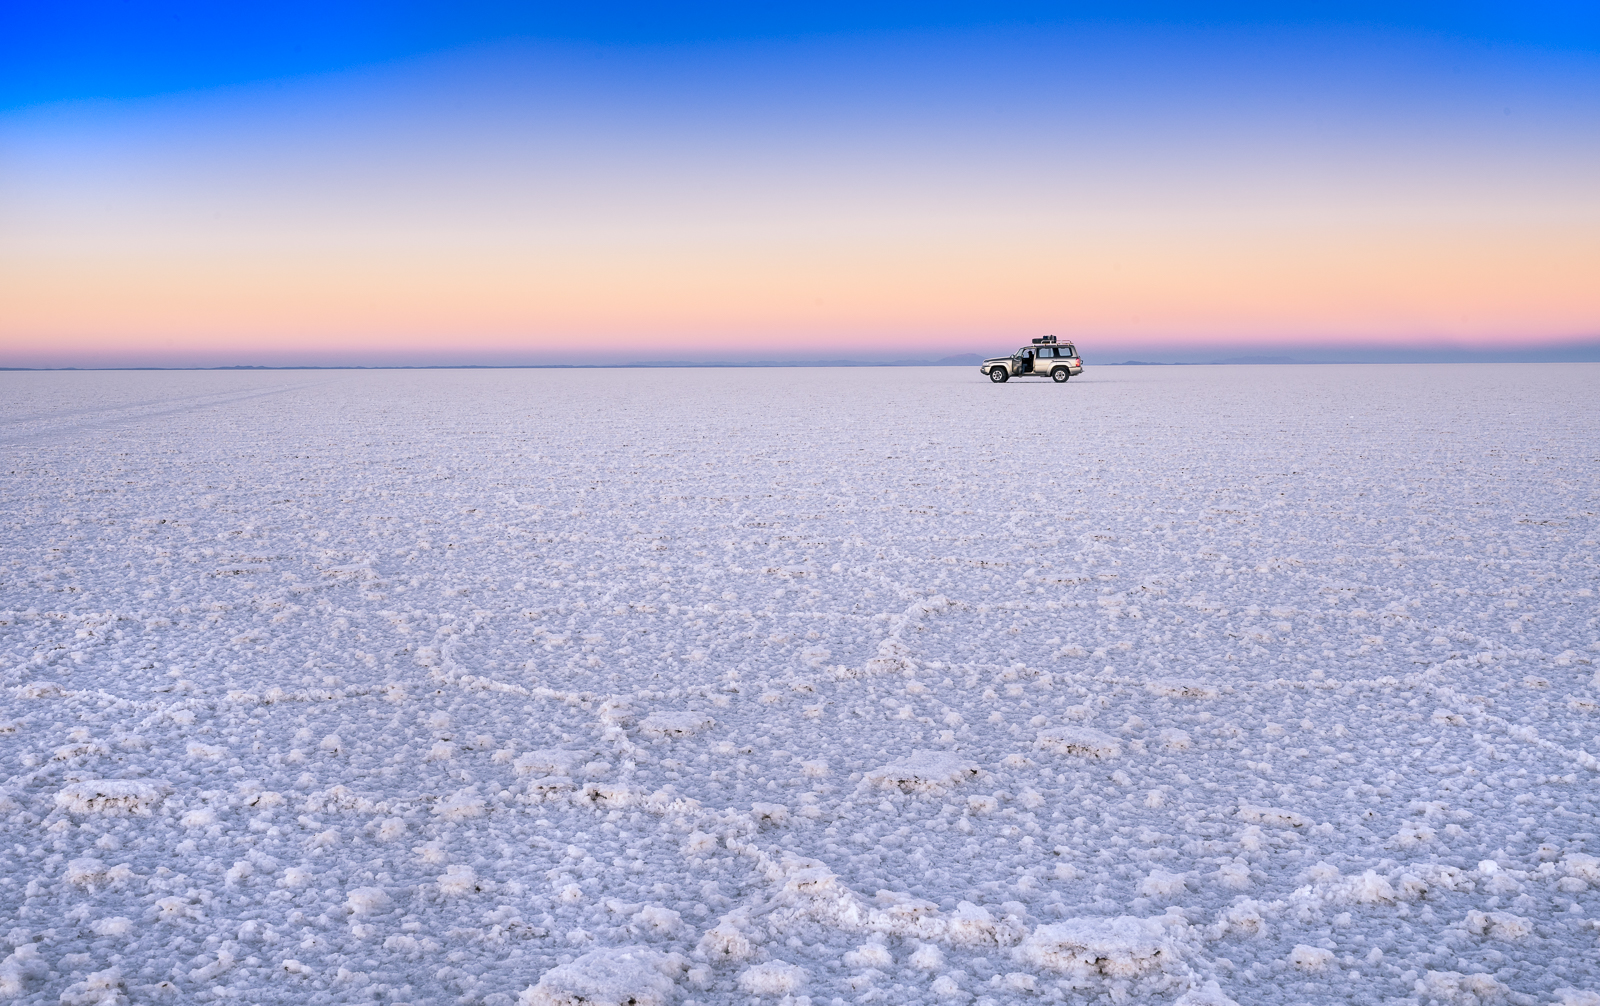 The salt flats at Salar de Uyuni during sunset.